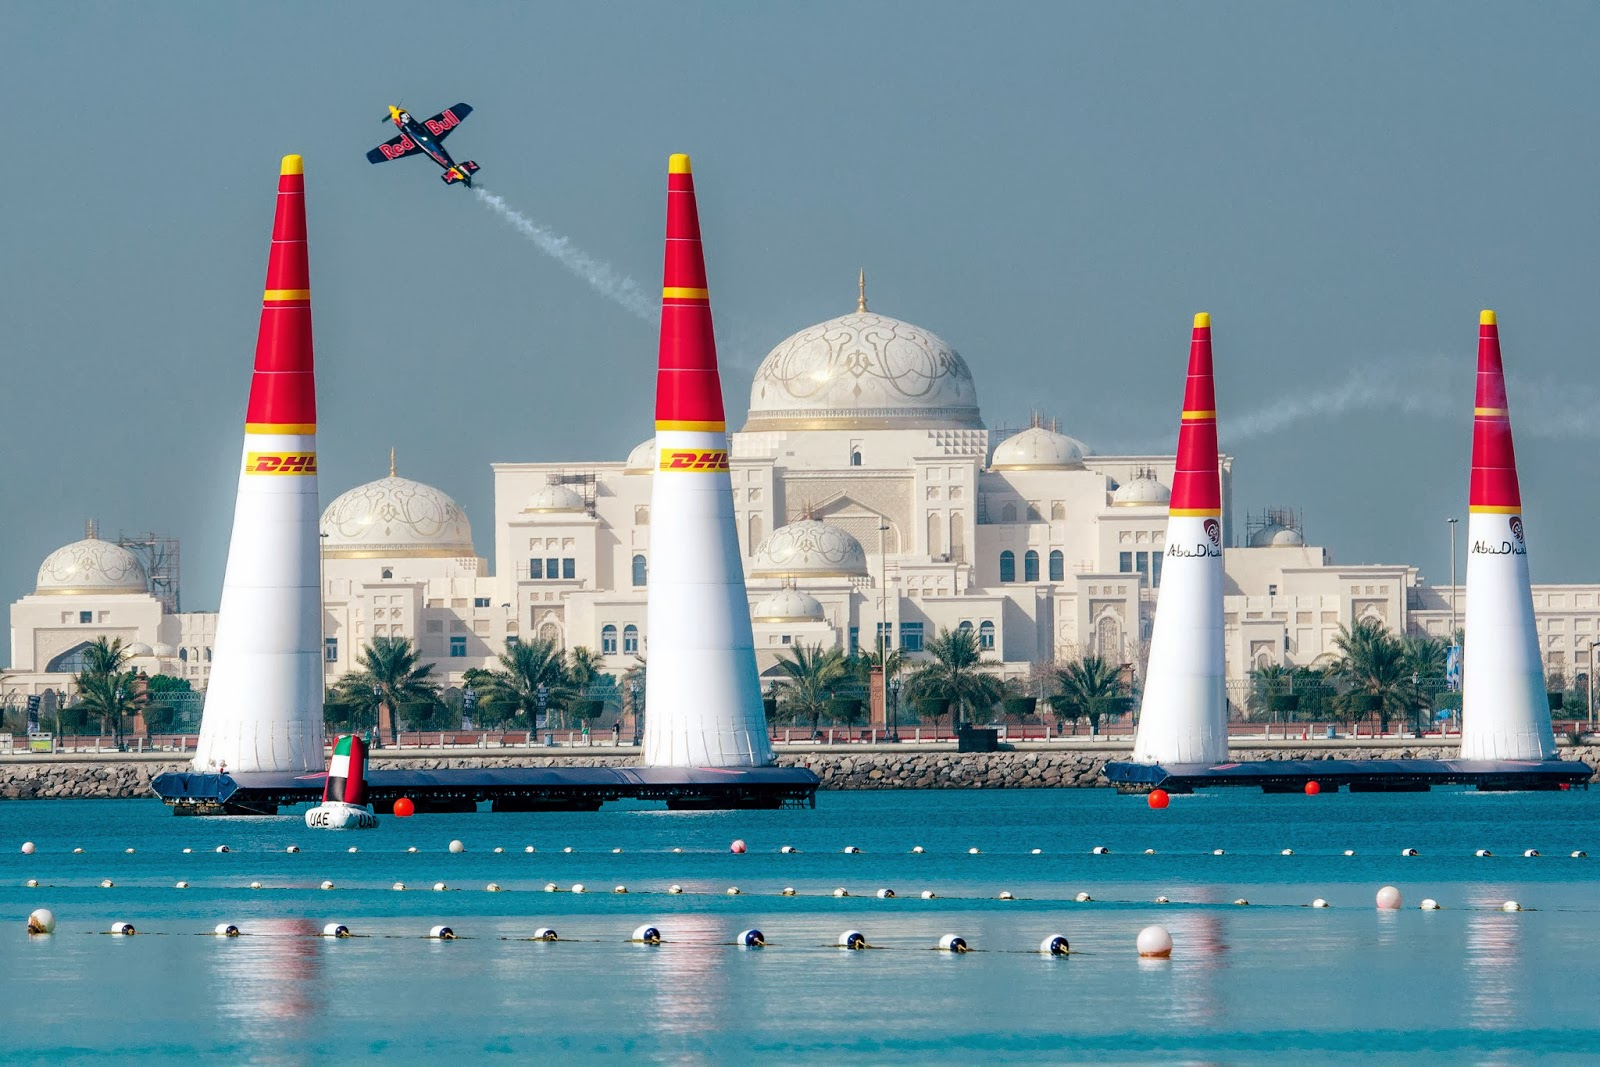 2014 Red Bull Air Race, Abu Dhabi, Air Race, Air Race 2014, Red Bull, Sports, UAE, World Championship,